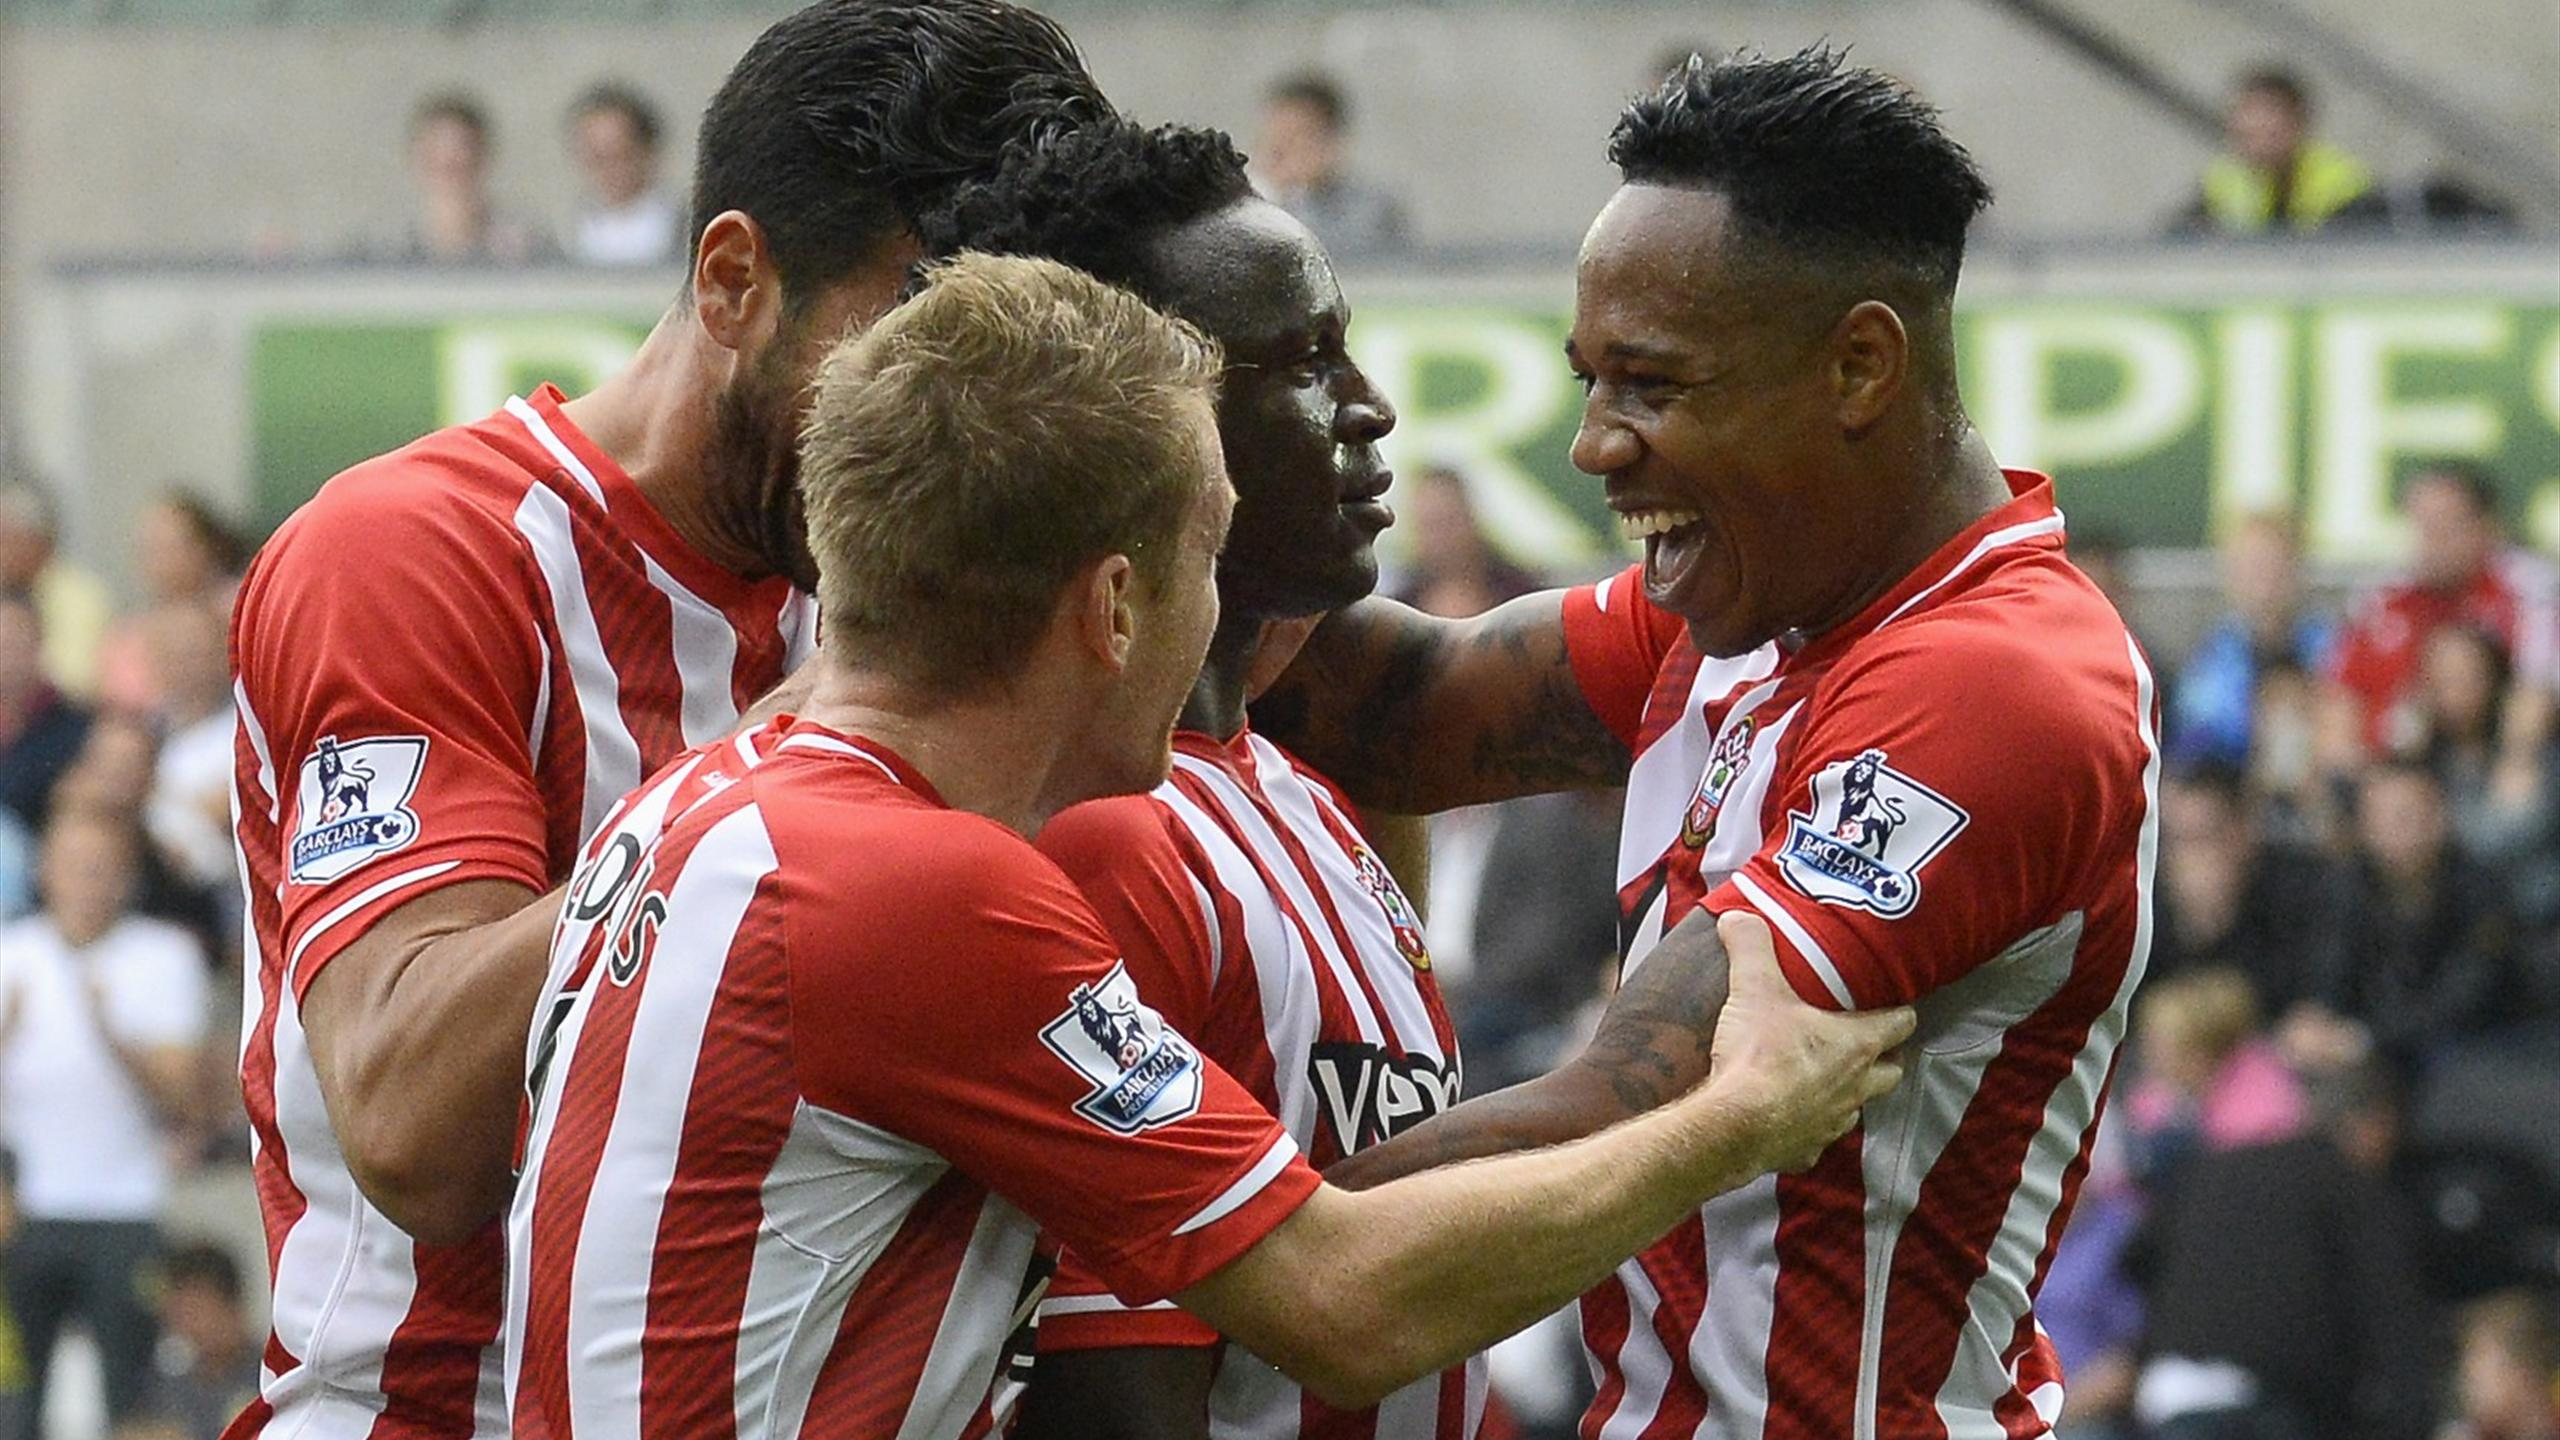 Video: Swansea City vs Southampton